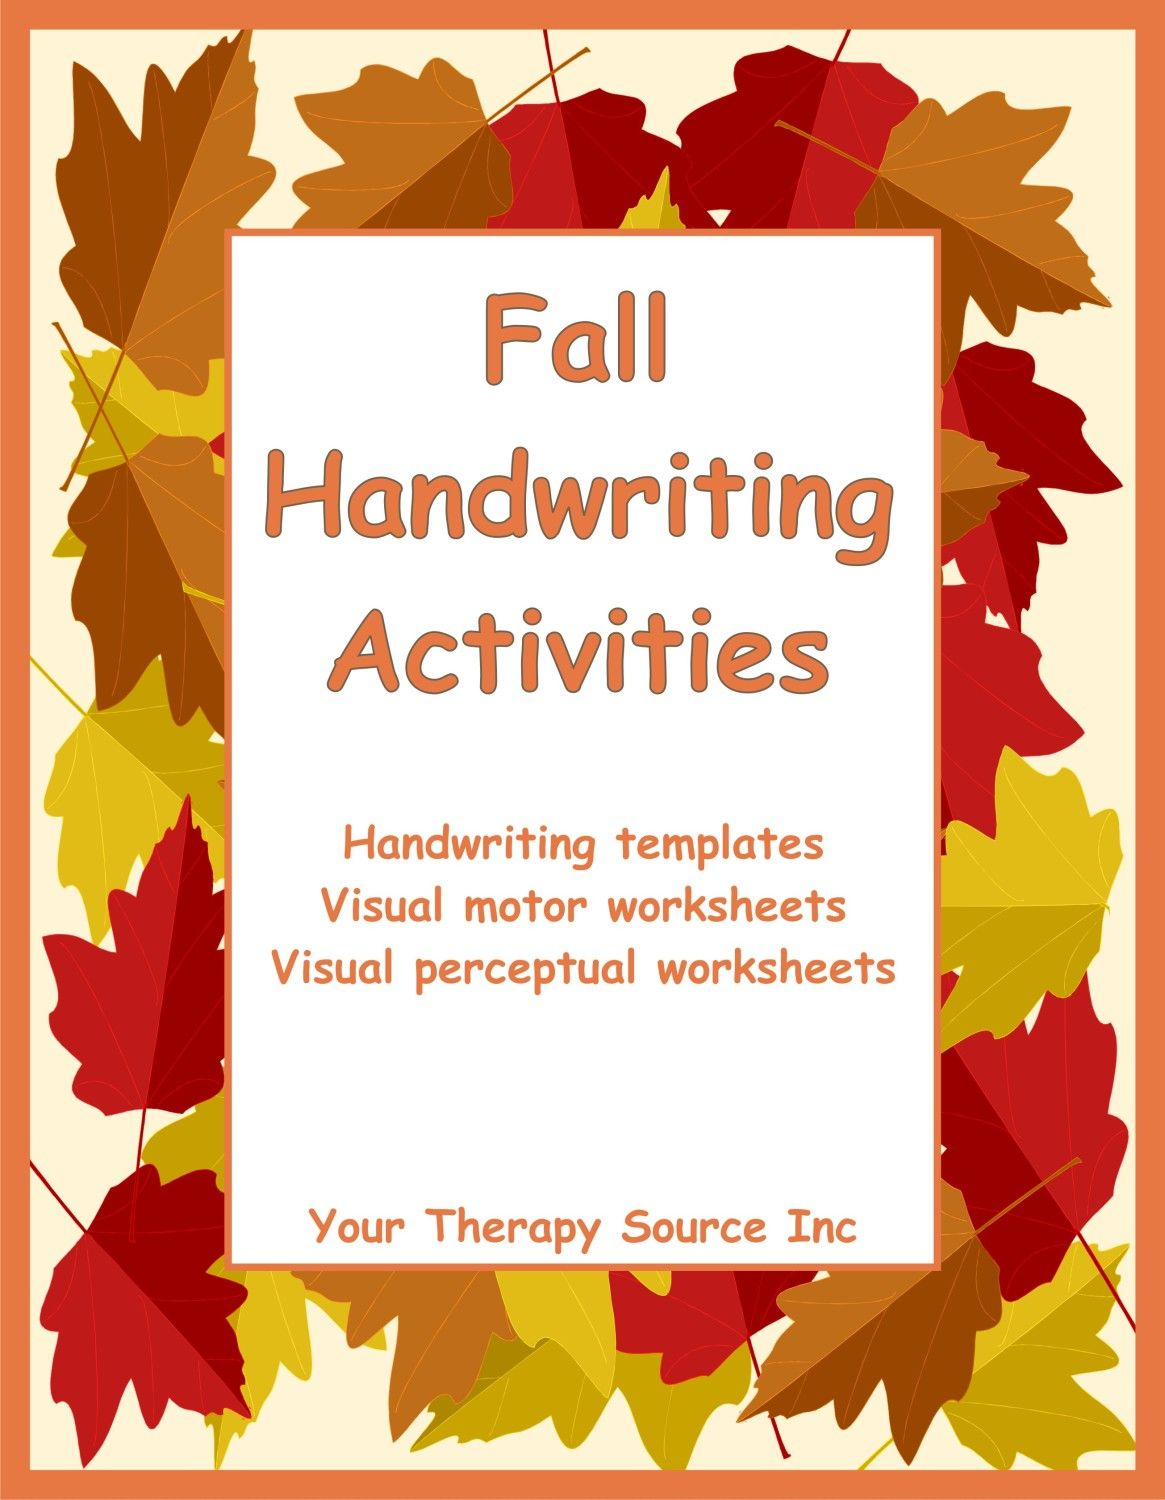 Fall Handwriting Activities With Images